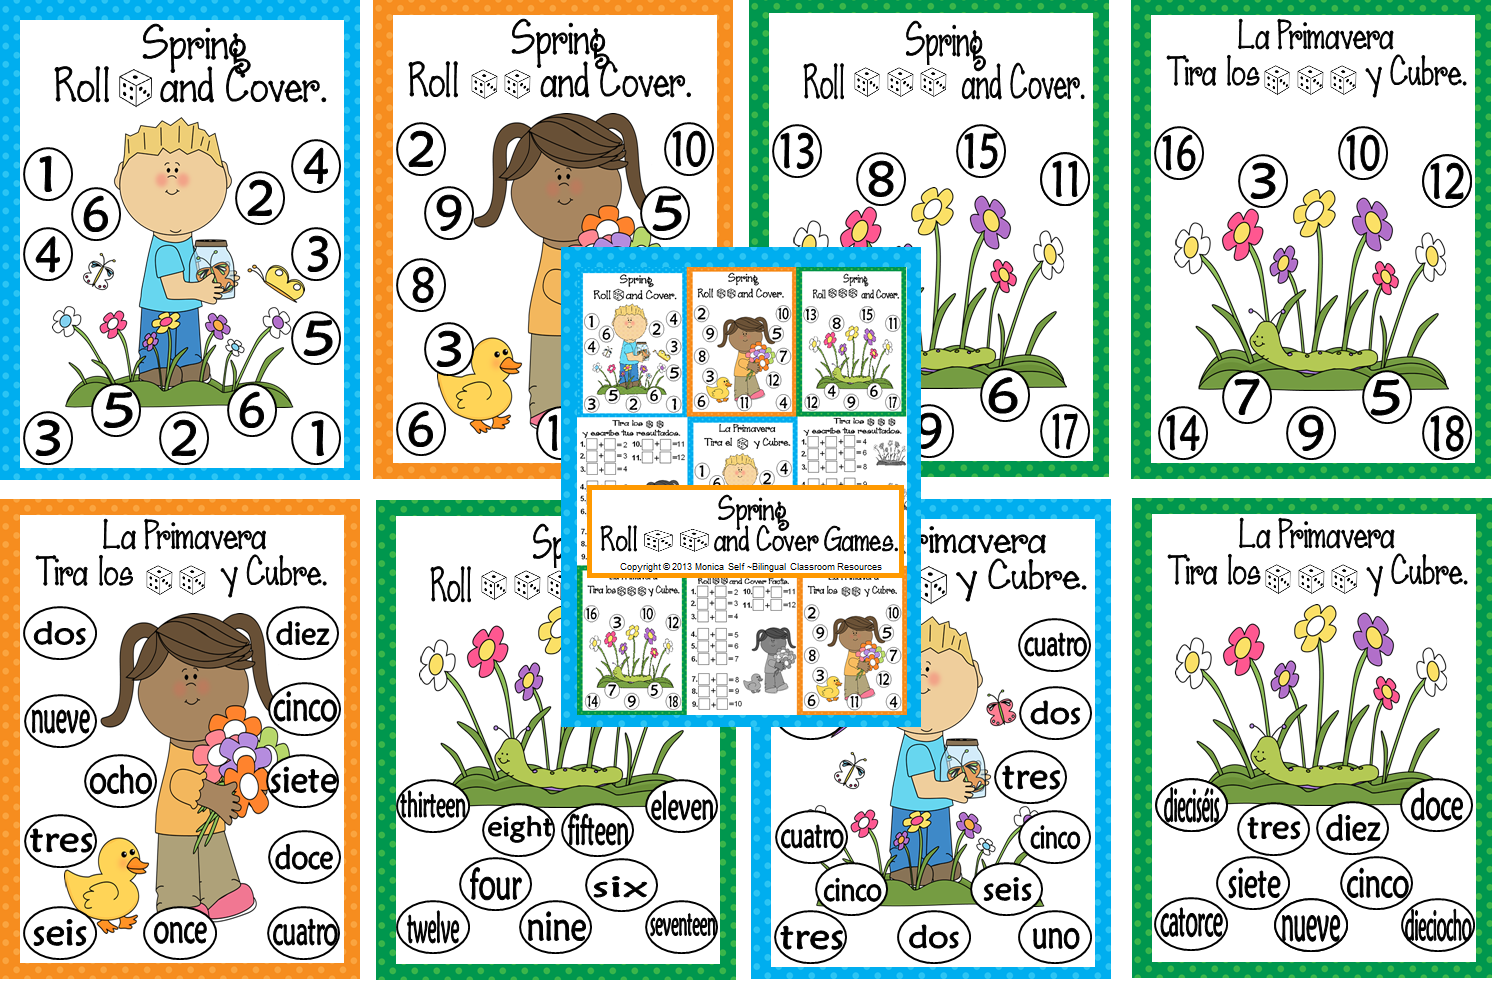 http://www.teacherspayteachers.com/Product/Spring-Roll-and-Cover-Games-611910